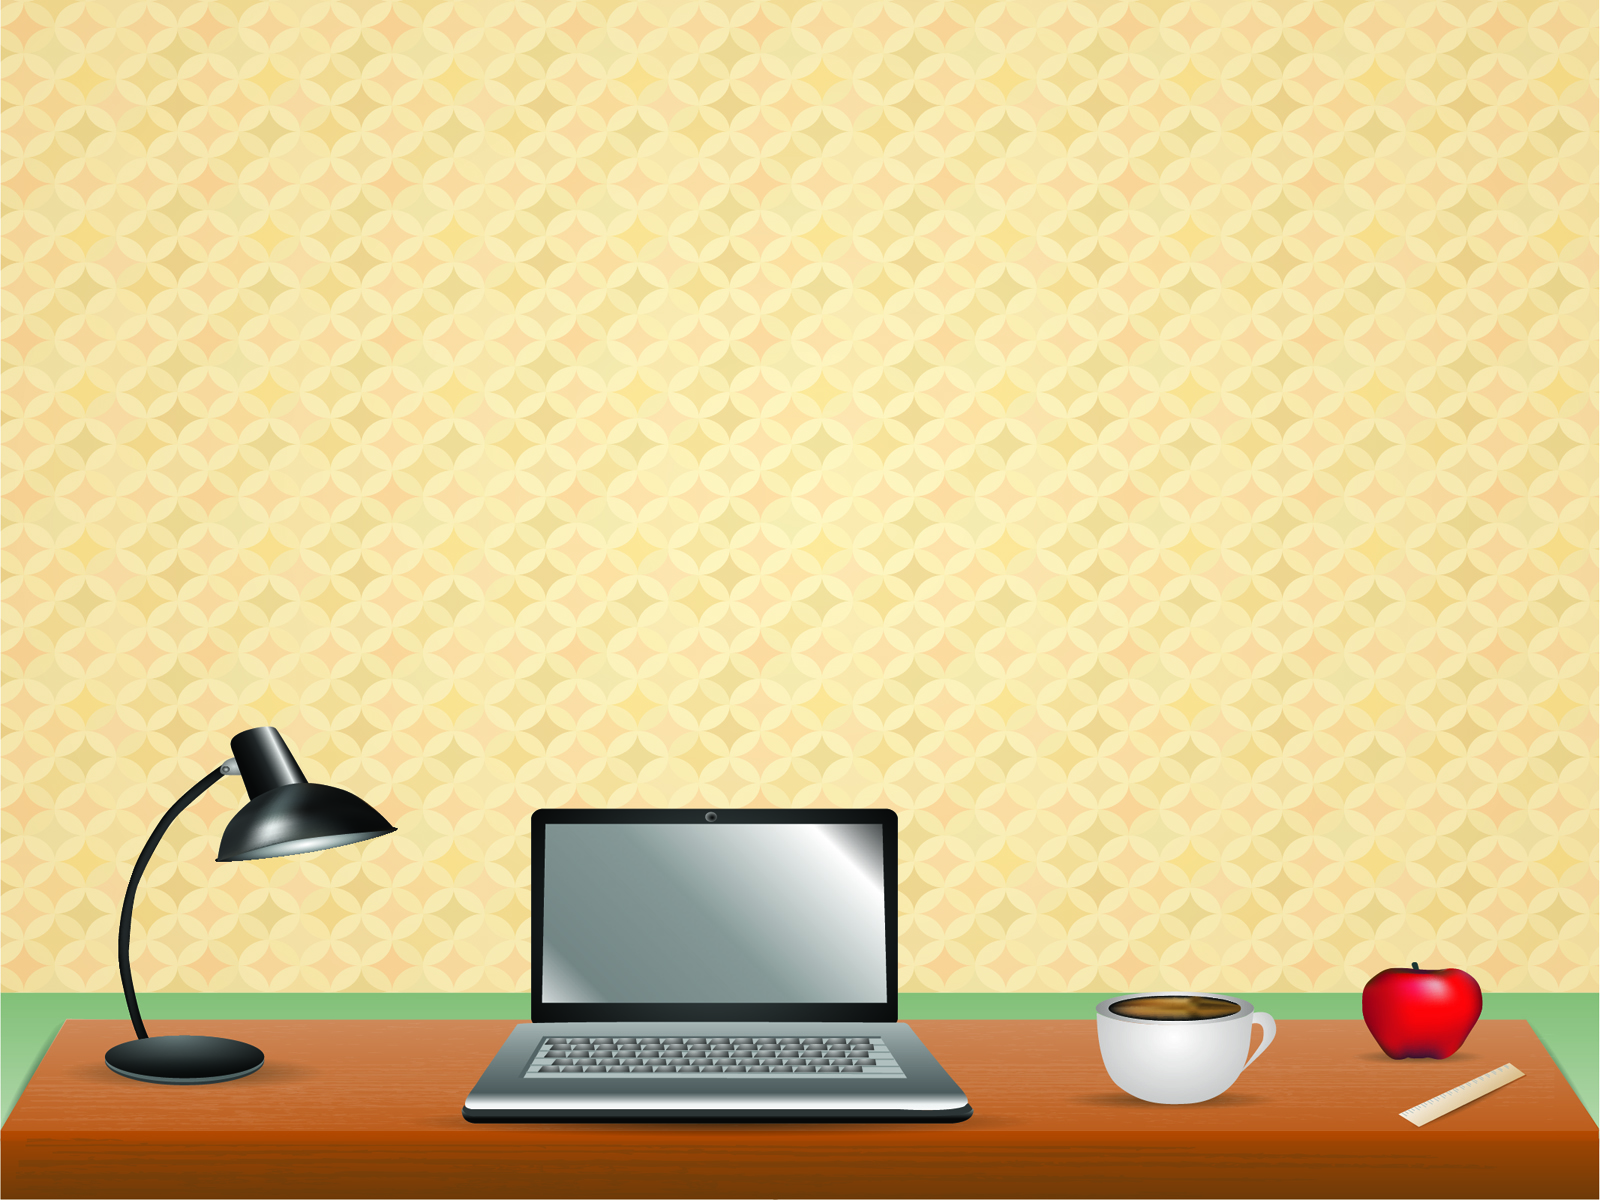 Office scene PowerPoint background